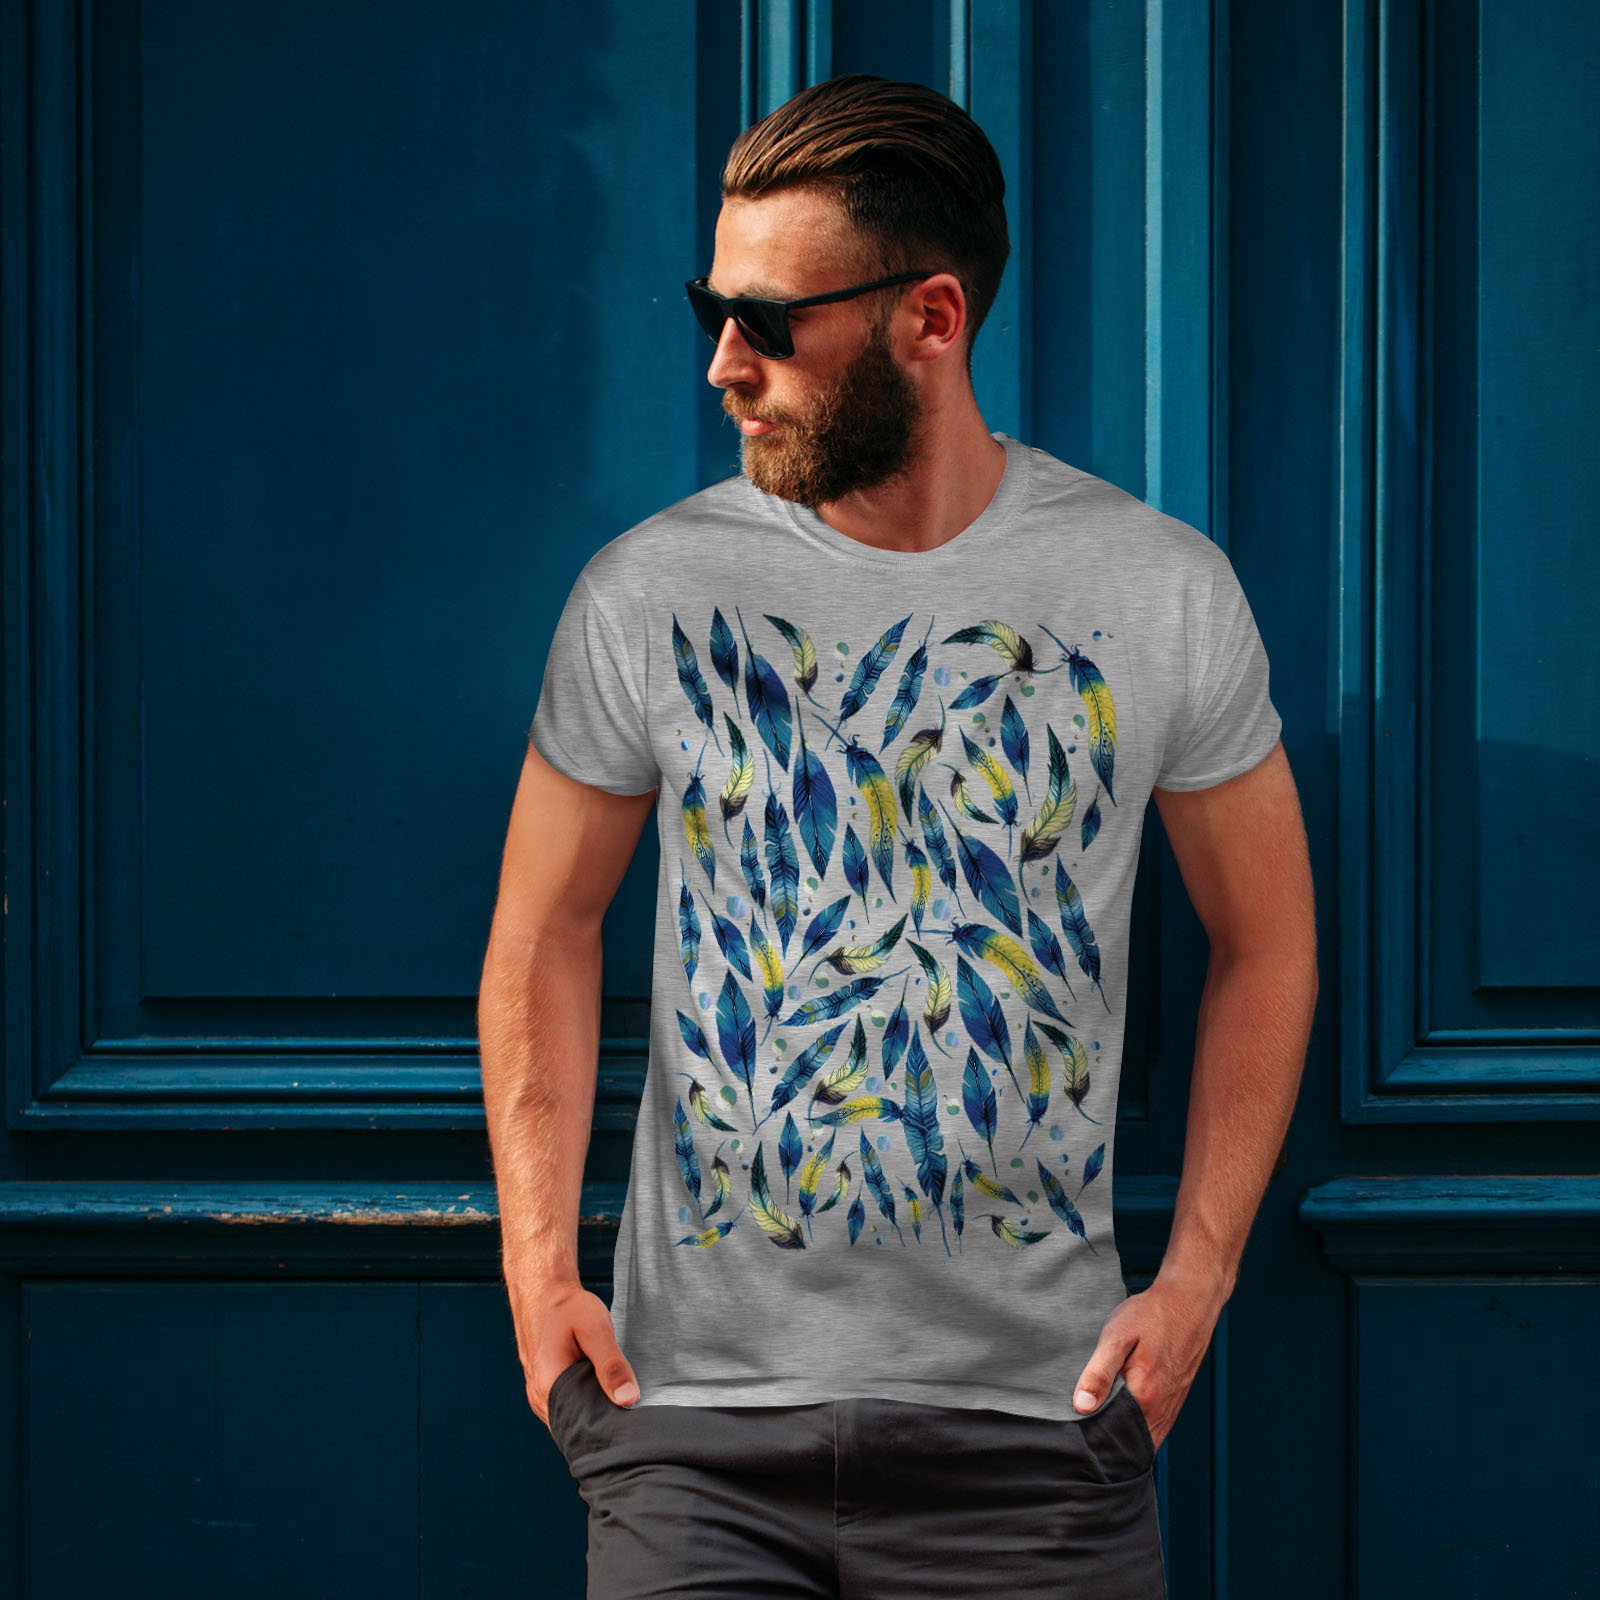 Wellcoda-fashion-Plumes-T-shirt-homme-Abstract-Design-graphique-imprime-Tee miniature 16